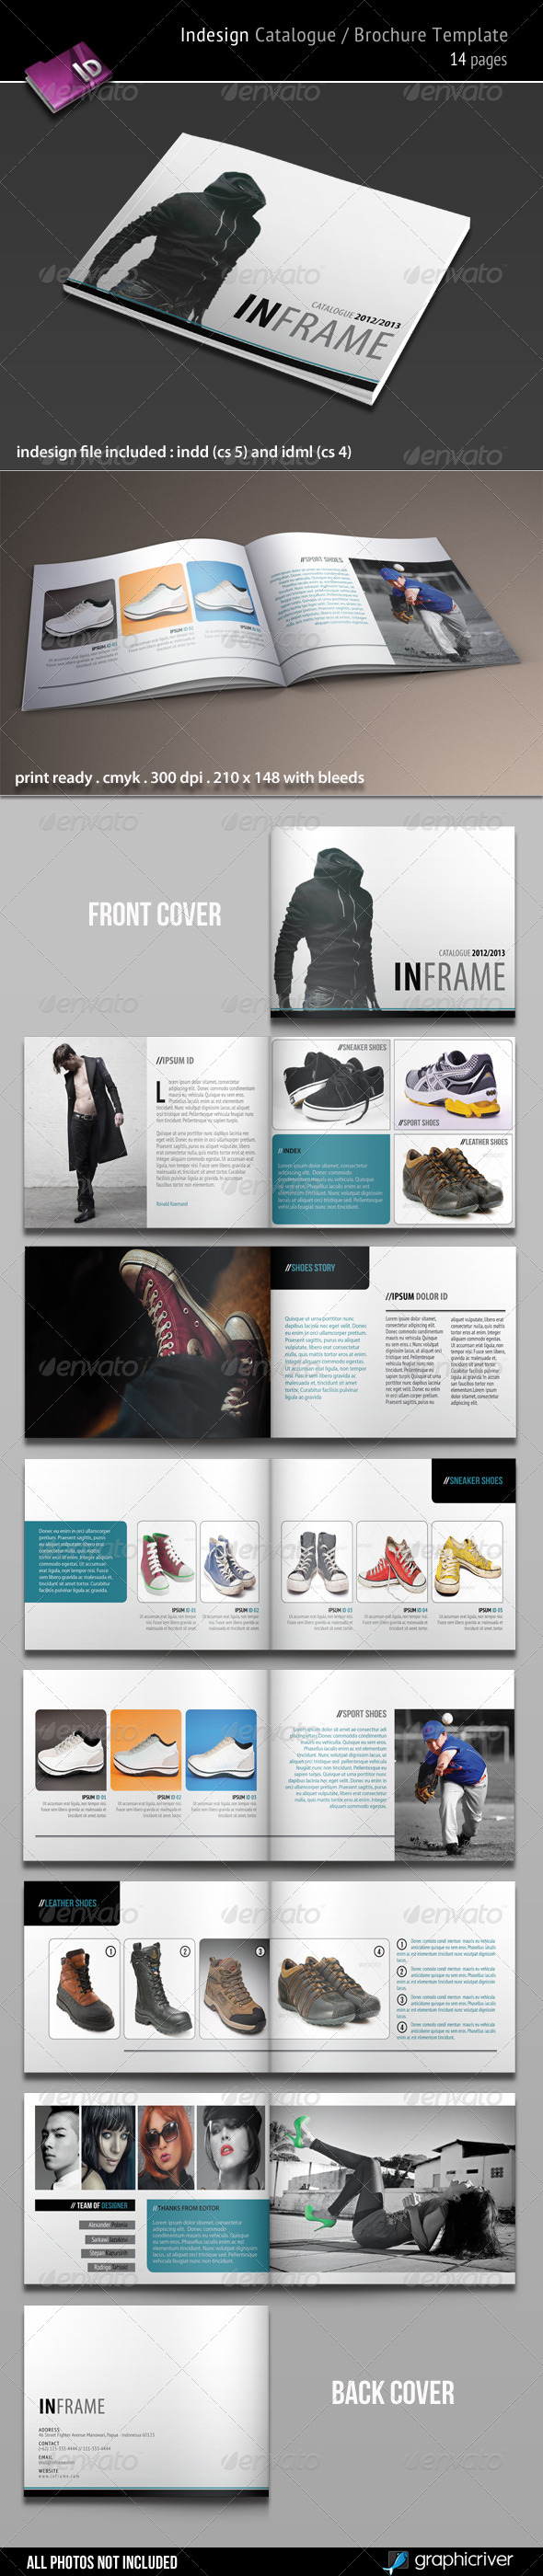 Indesign catalogue brochure template by kartodarim graphicriver for Catalogue templates indesign